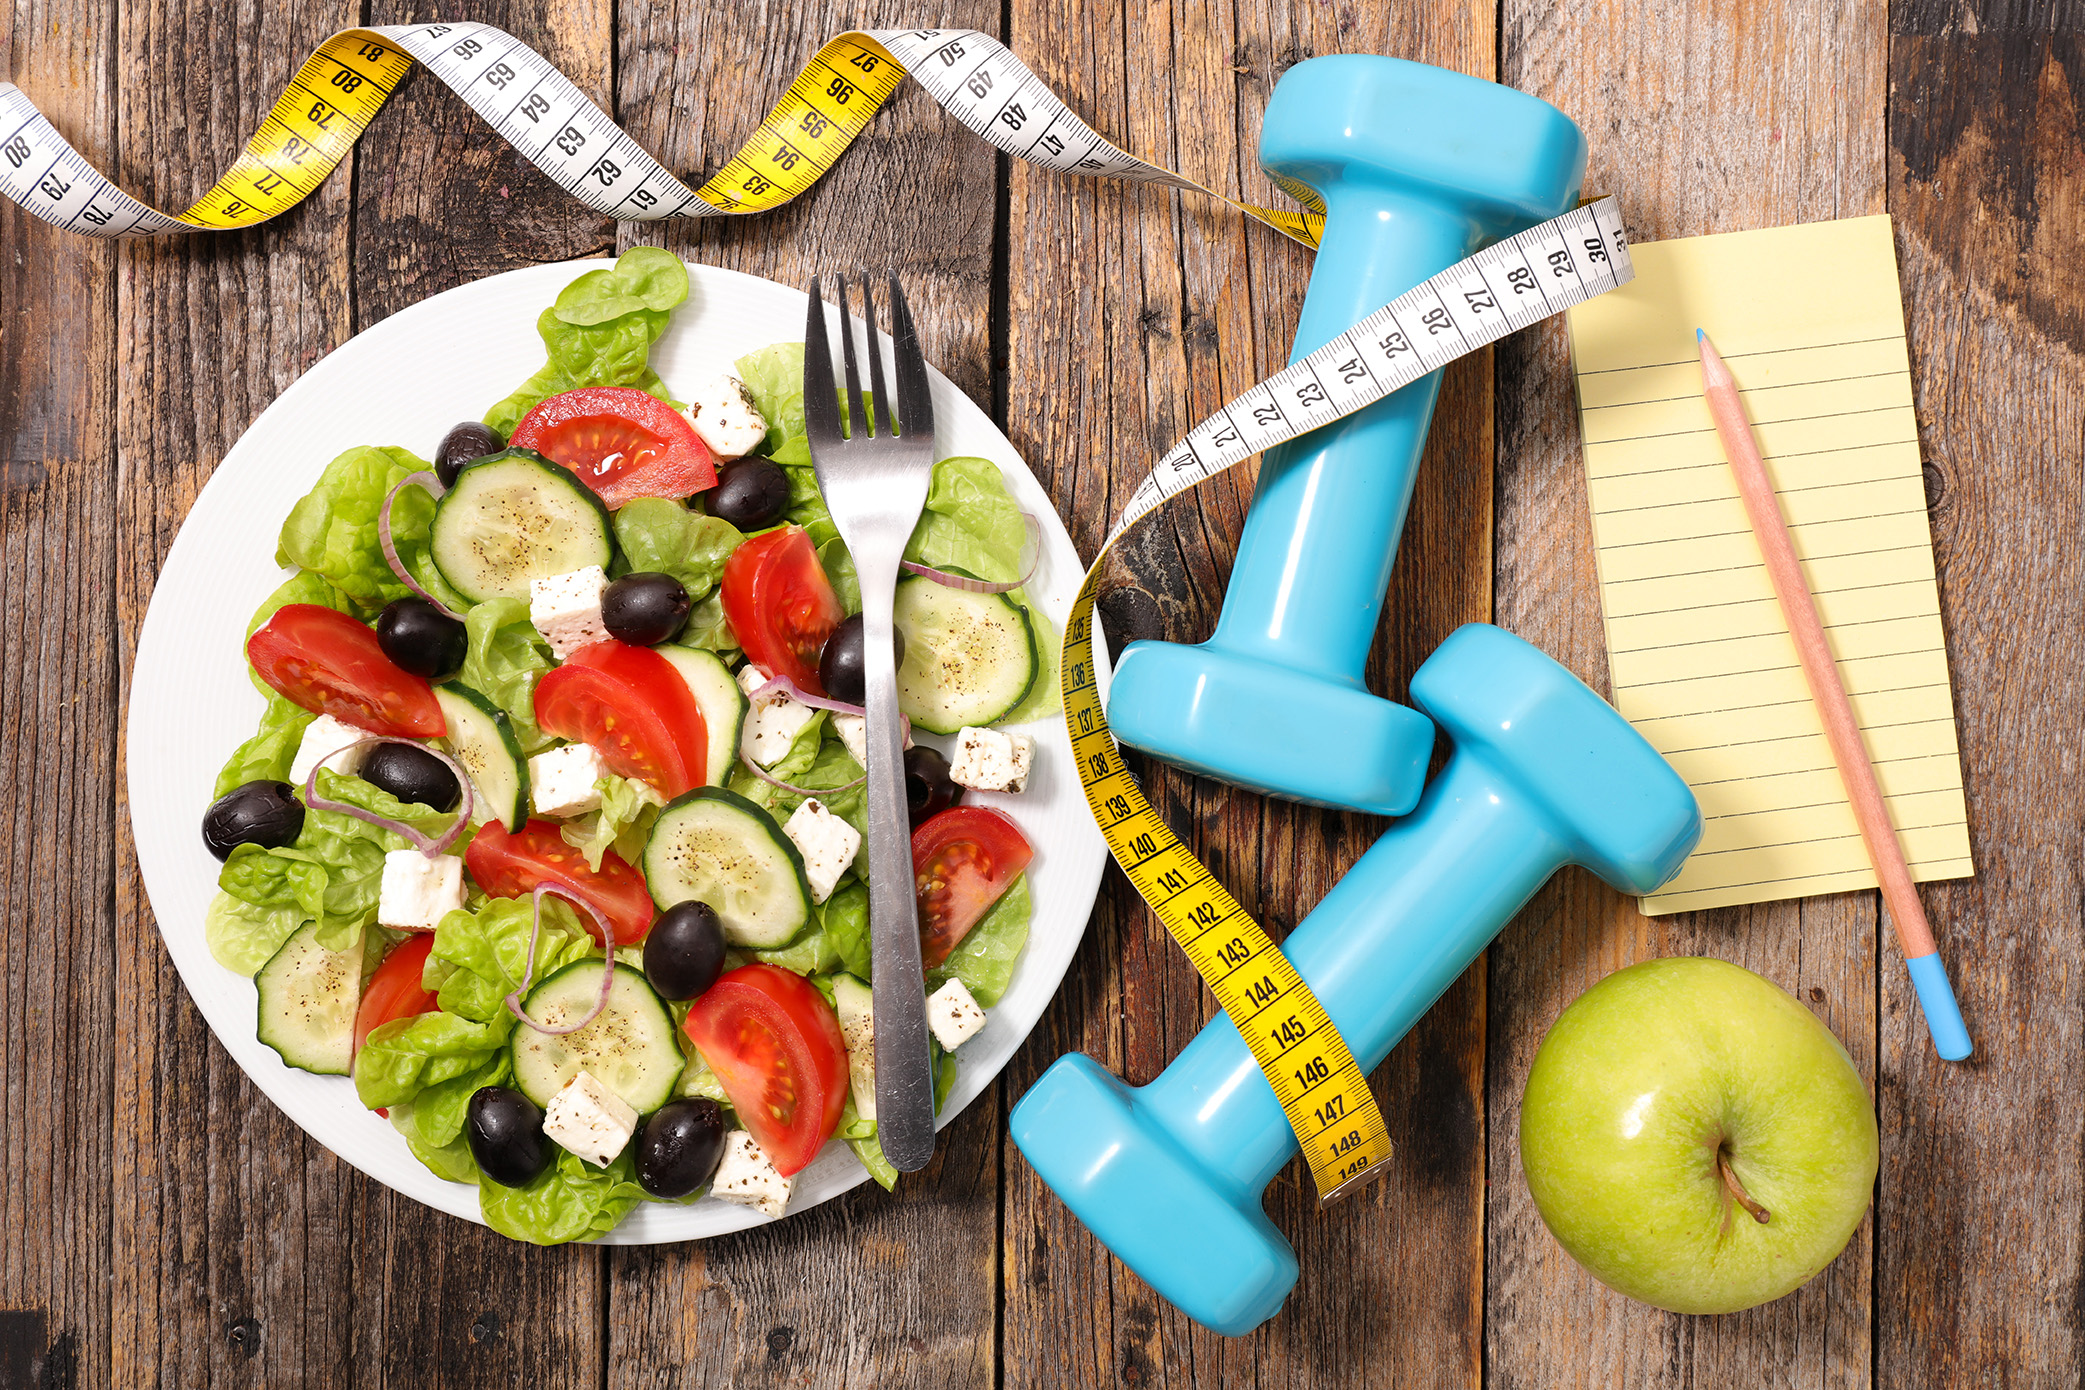 plate of salad, tape measure, green apple and light blue weights.